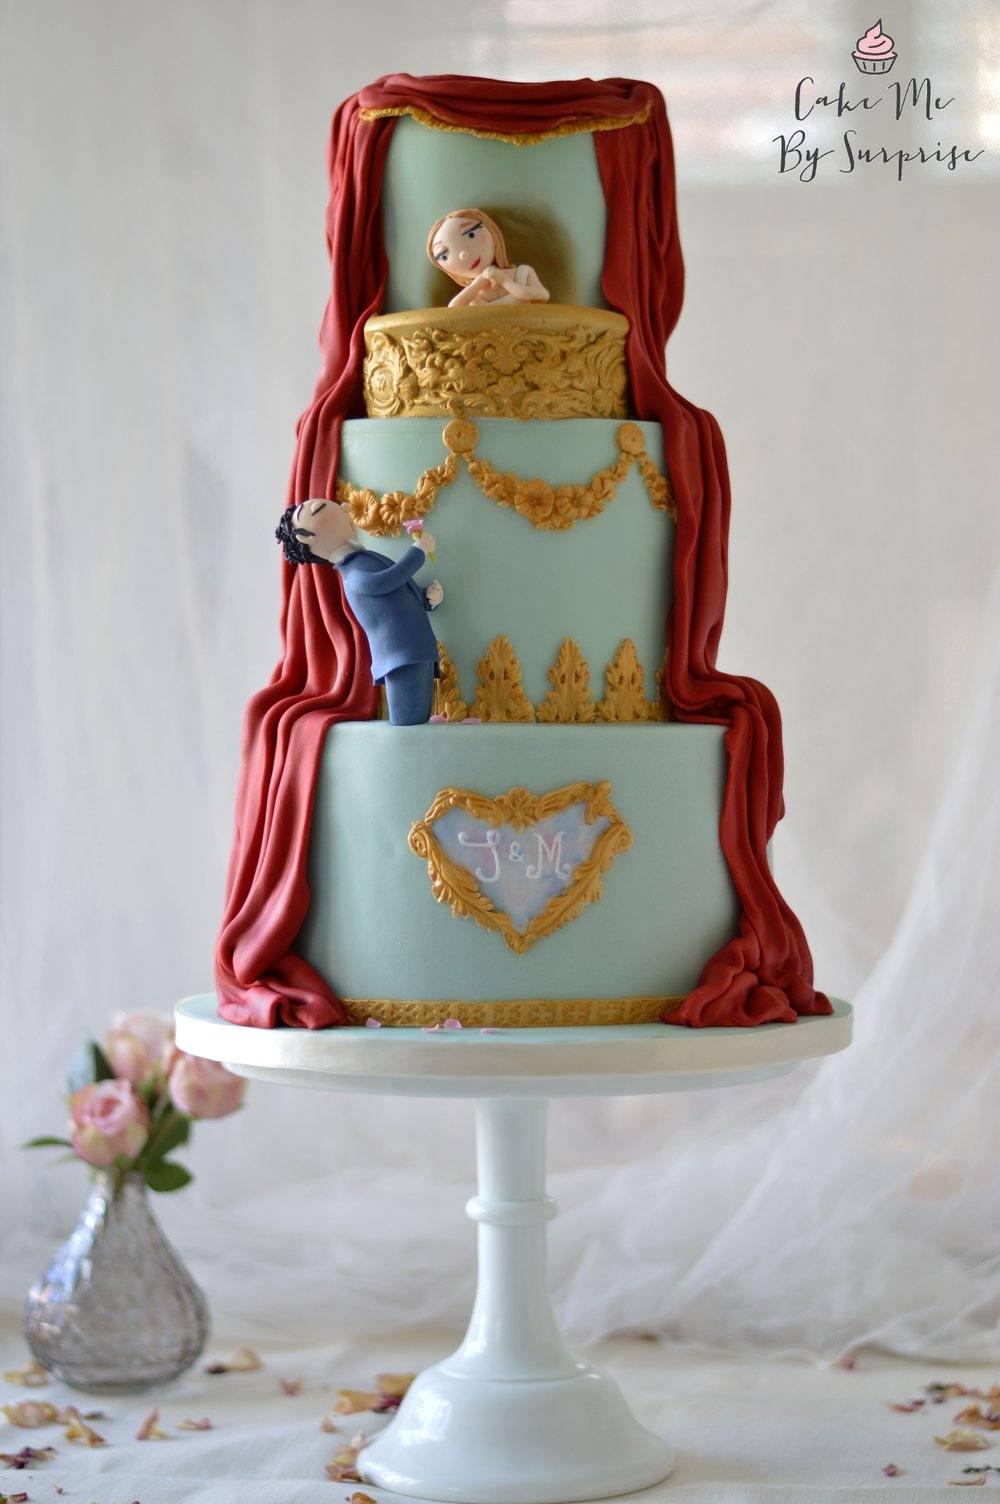 At The Opera Three tier duck egg blue finished wedding cake, inspired by the couples love of the opera. Bespoke design. Serves 130 £500